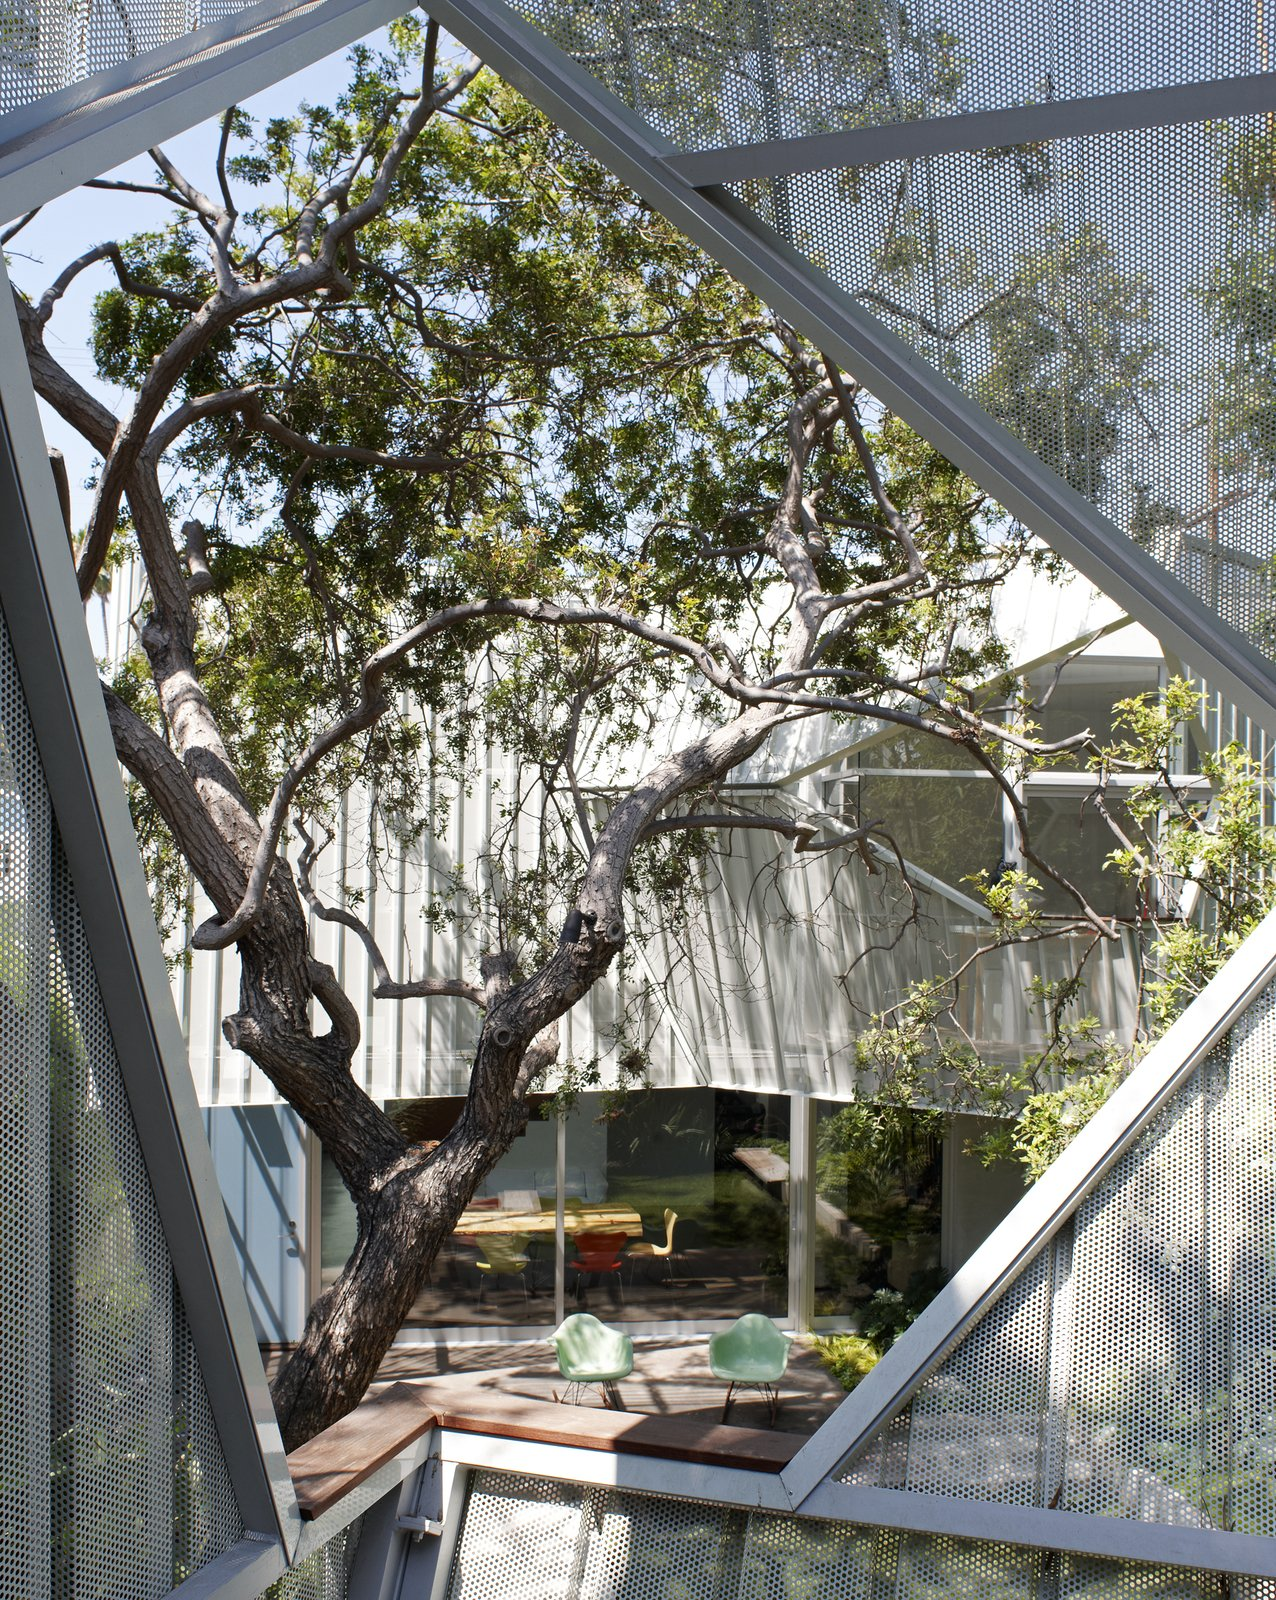 Photo 6 of 10 in A Perforated Screen Brings Privacy and Natural Light to This Bold Venice Home